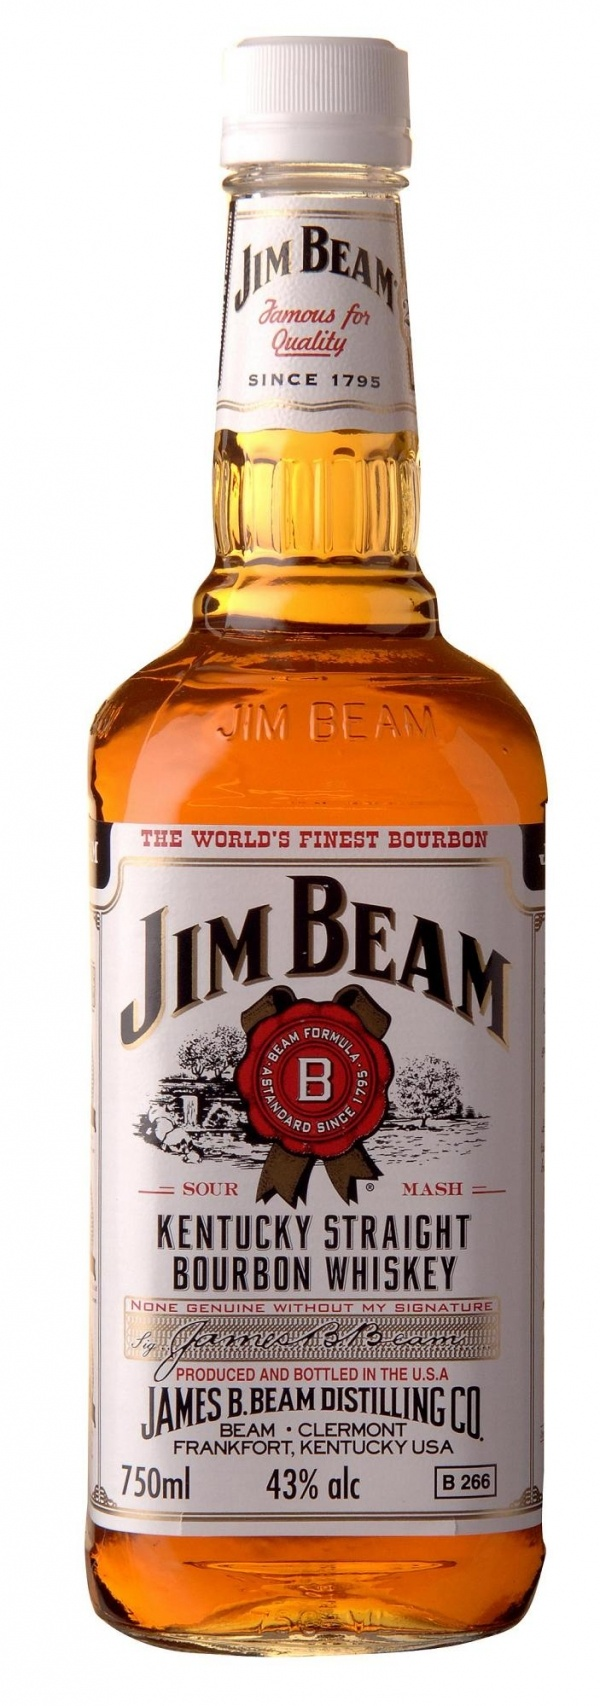 Jim Beam! I use this so much at my bakery. The flavor stands up to other ingredients and doesn't get lost. Pure bourbon deliciousness.